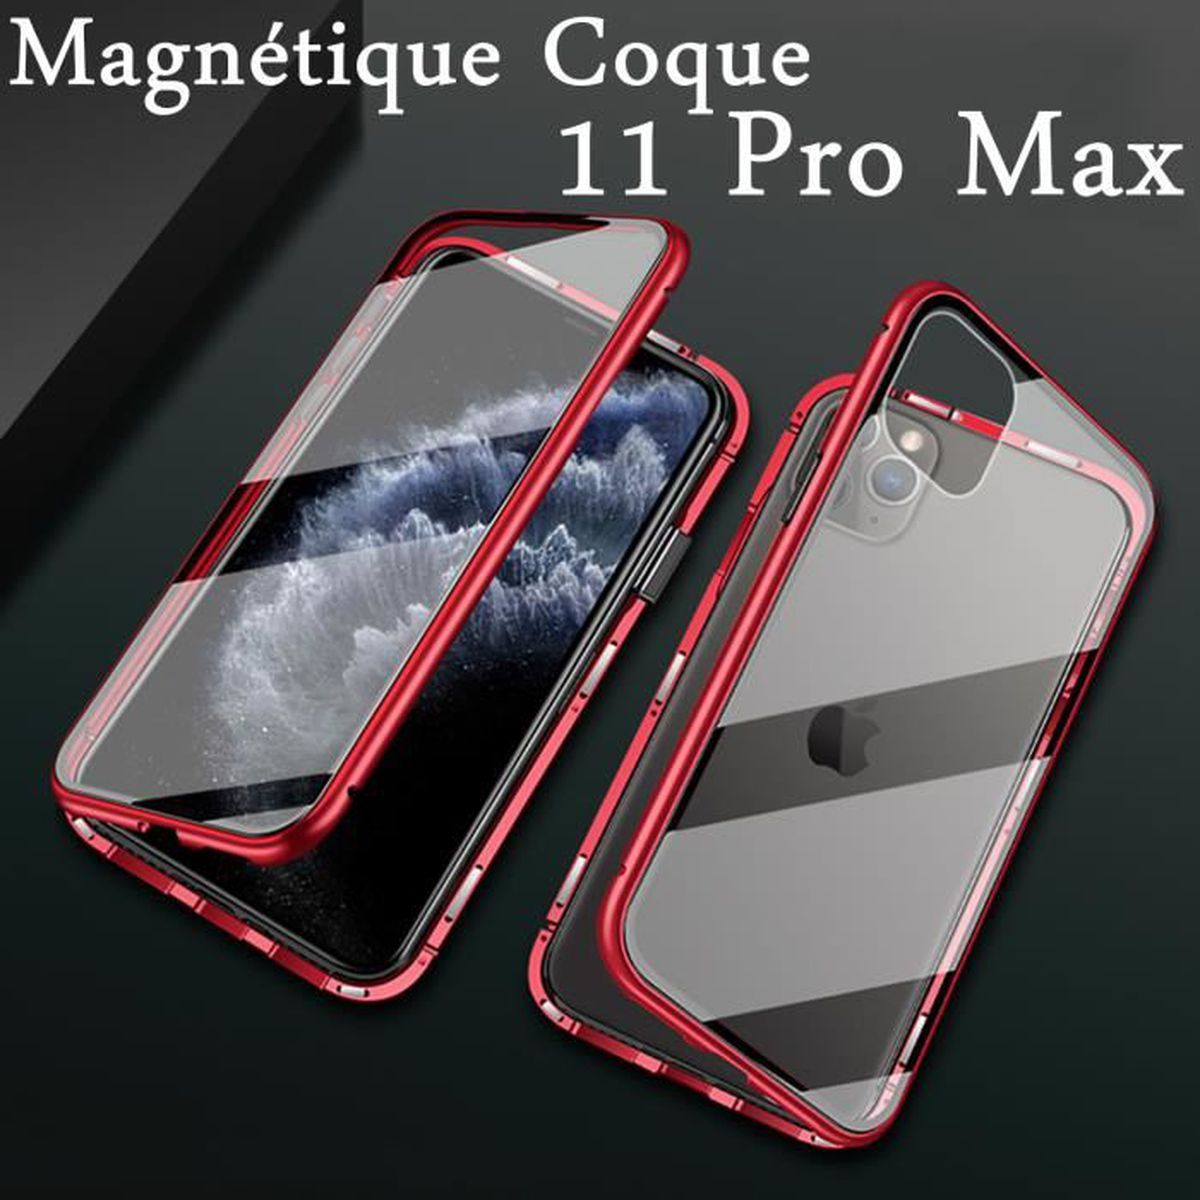 Coque iphone 11 pro max double